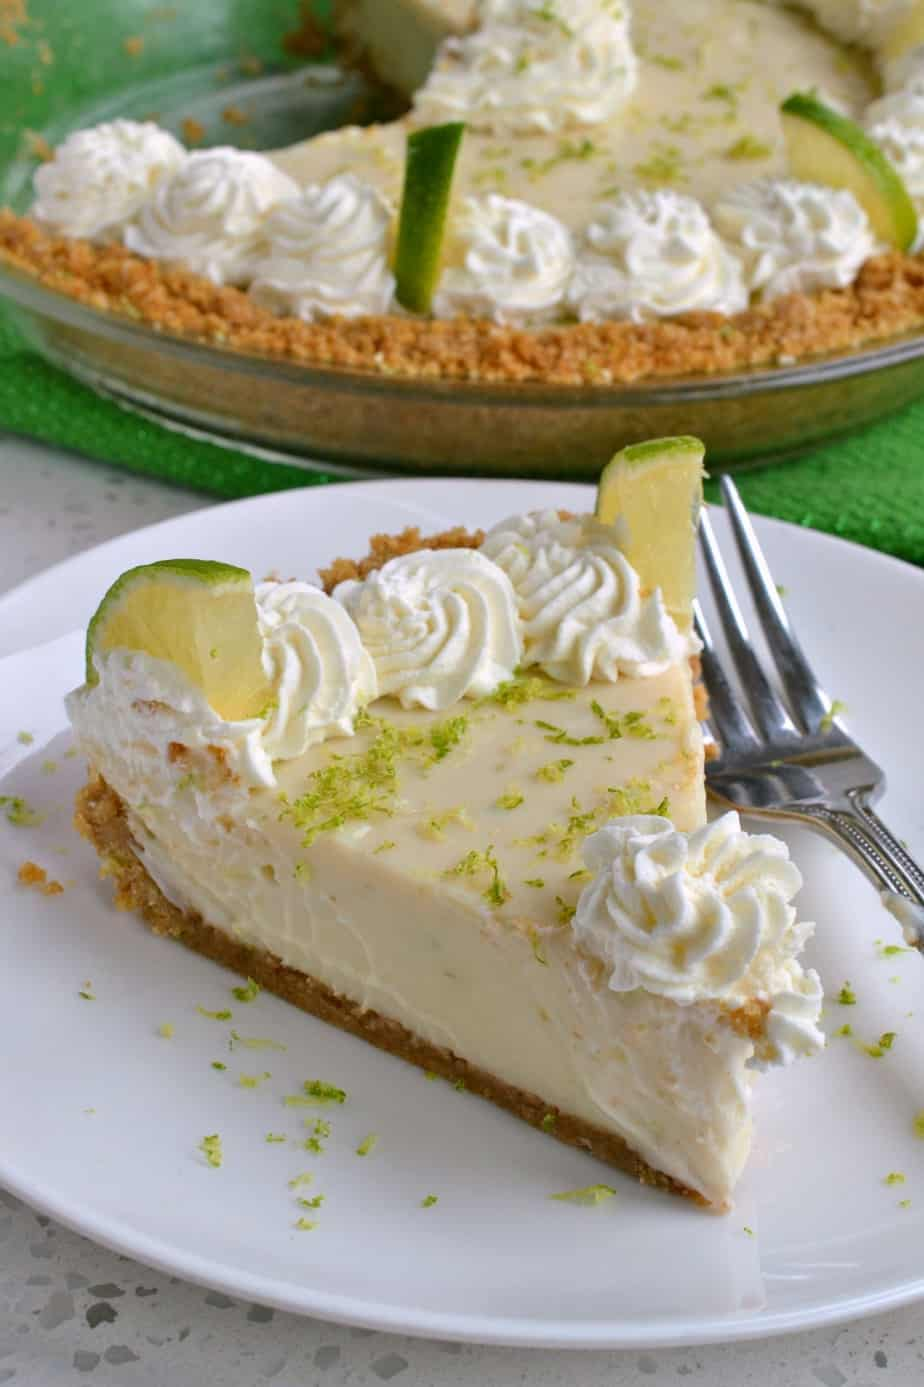 There is nothing quite as scrumptious as a fresh homemade Key Lime Pie.